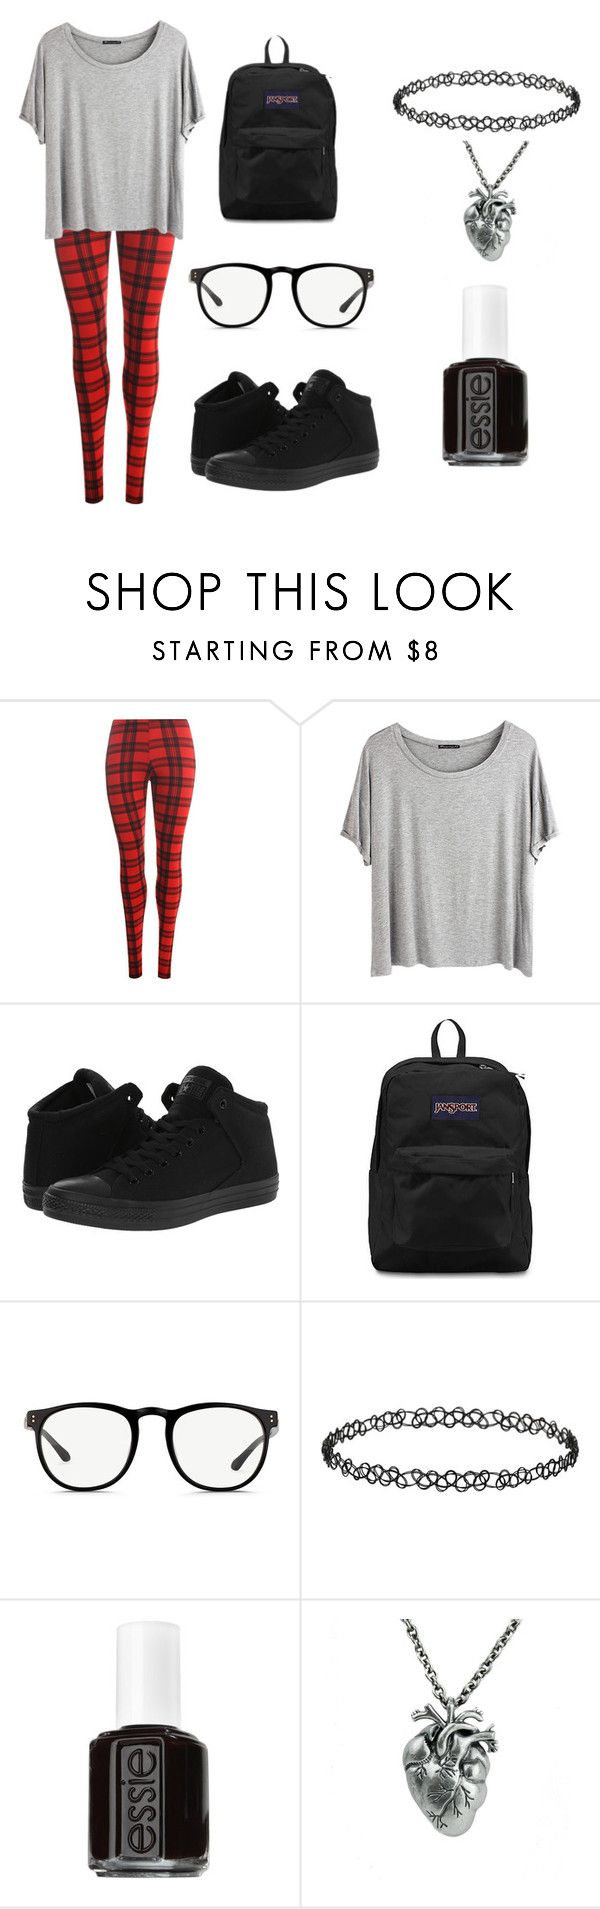 """""""Untitled #410"""" by xxghostlygracexx ❤ liked on Polyvore featuring WearAll, Chicnova Fashion, Converse, JanSport, Linda Farrow, Dorothy Perkins and Essie"""